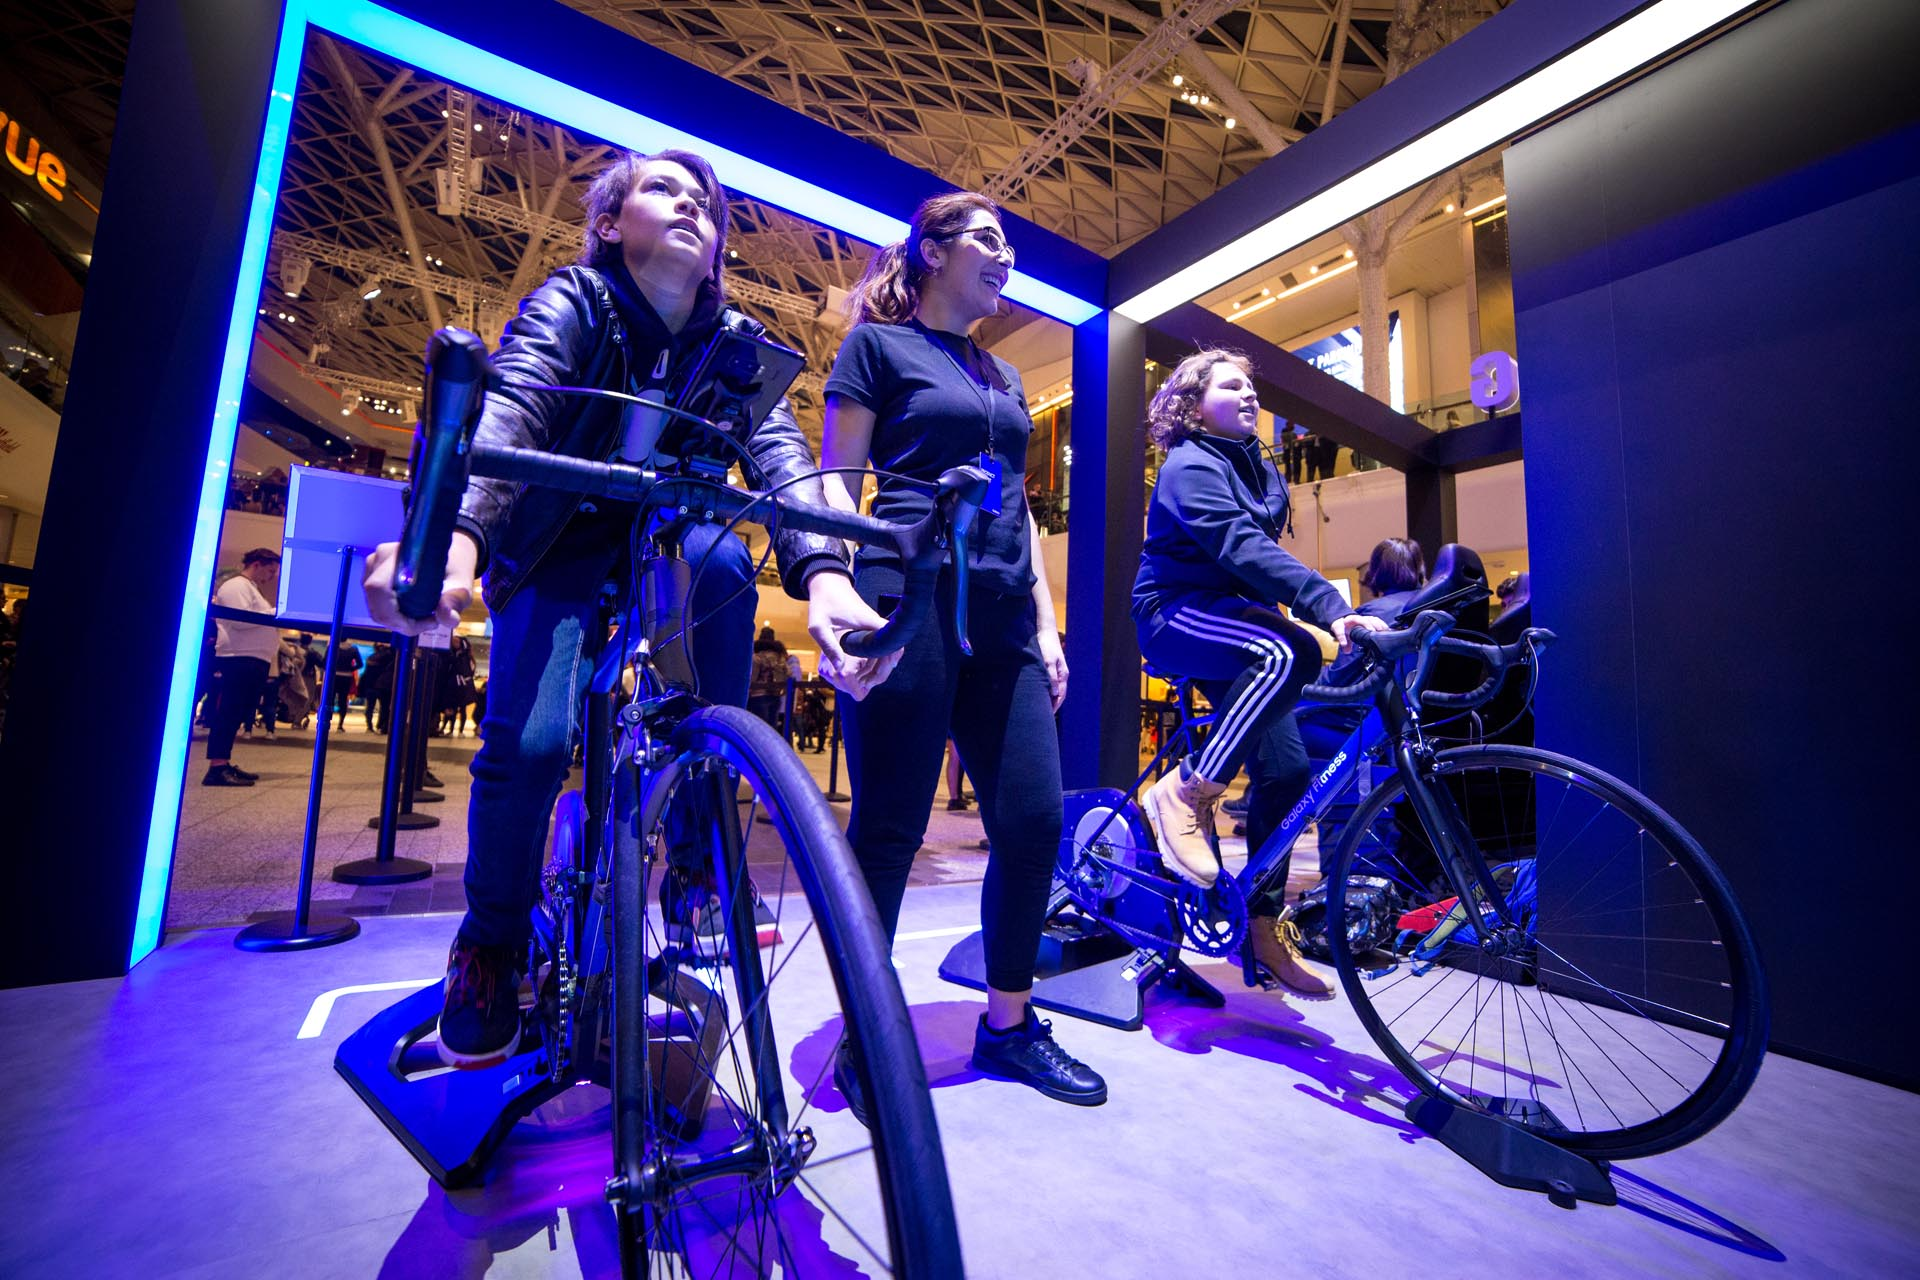 Stationary road bikes at Samsung event